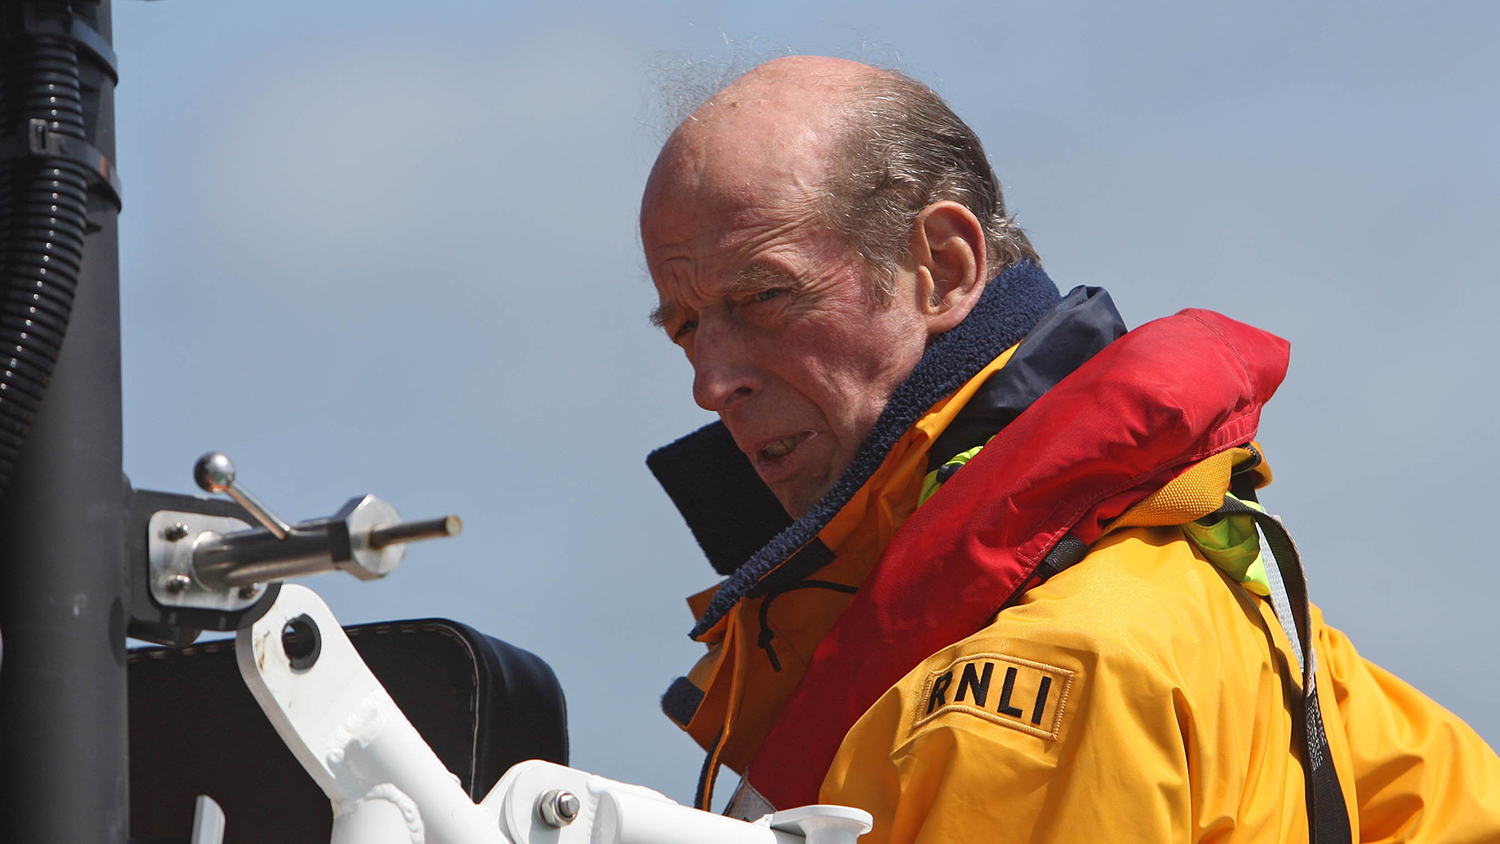 HRH The Duke of Kent visits Padstow Lifeboat Station